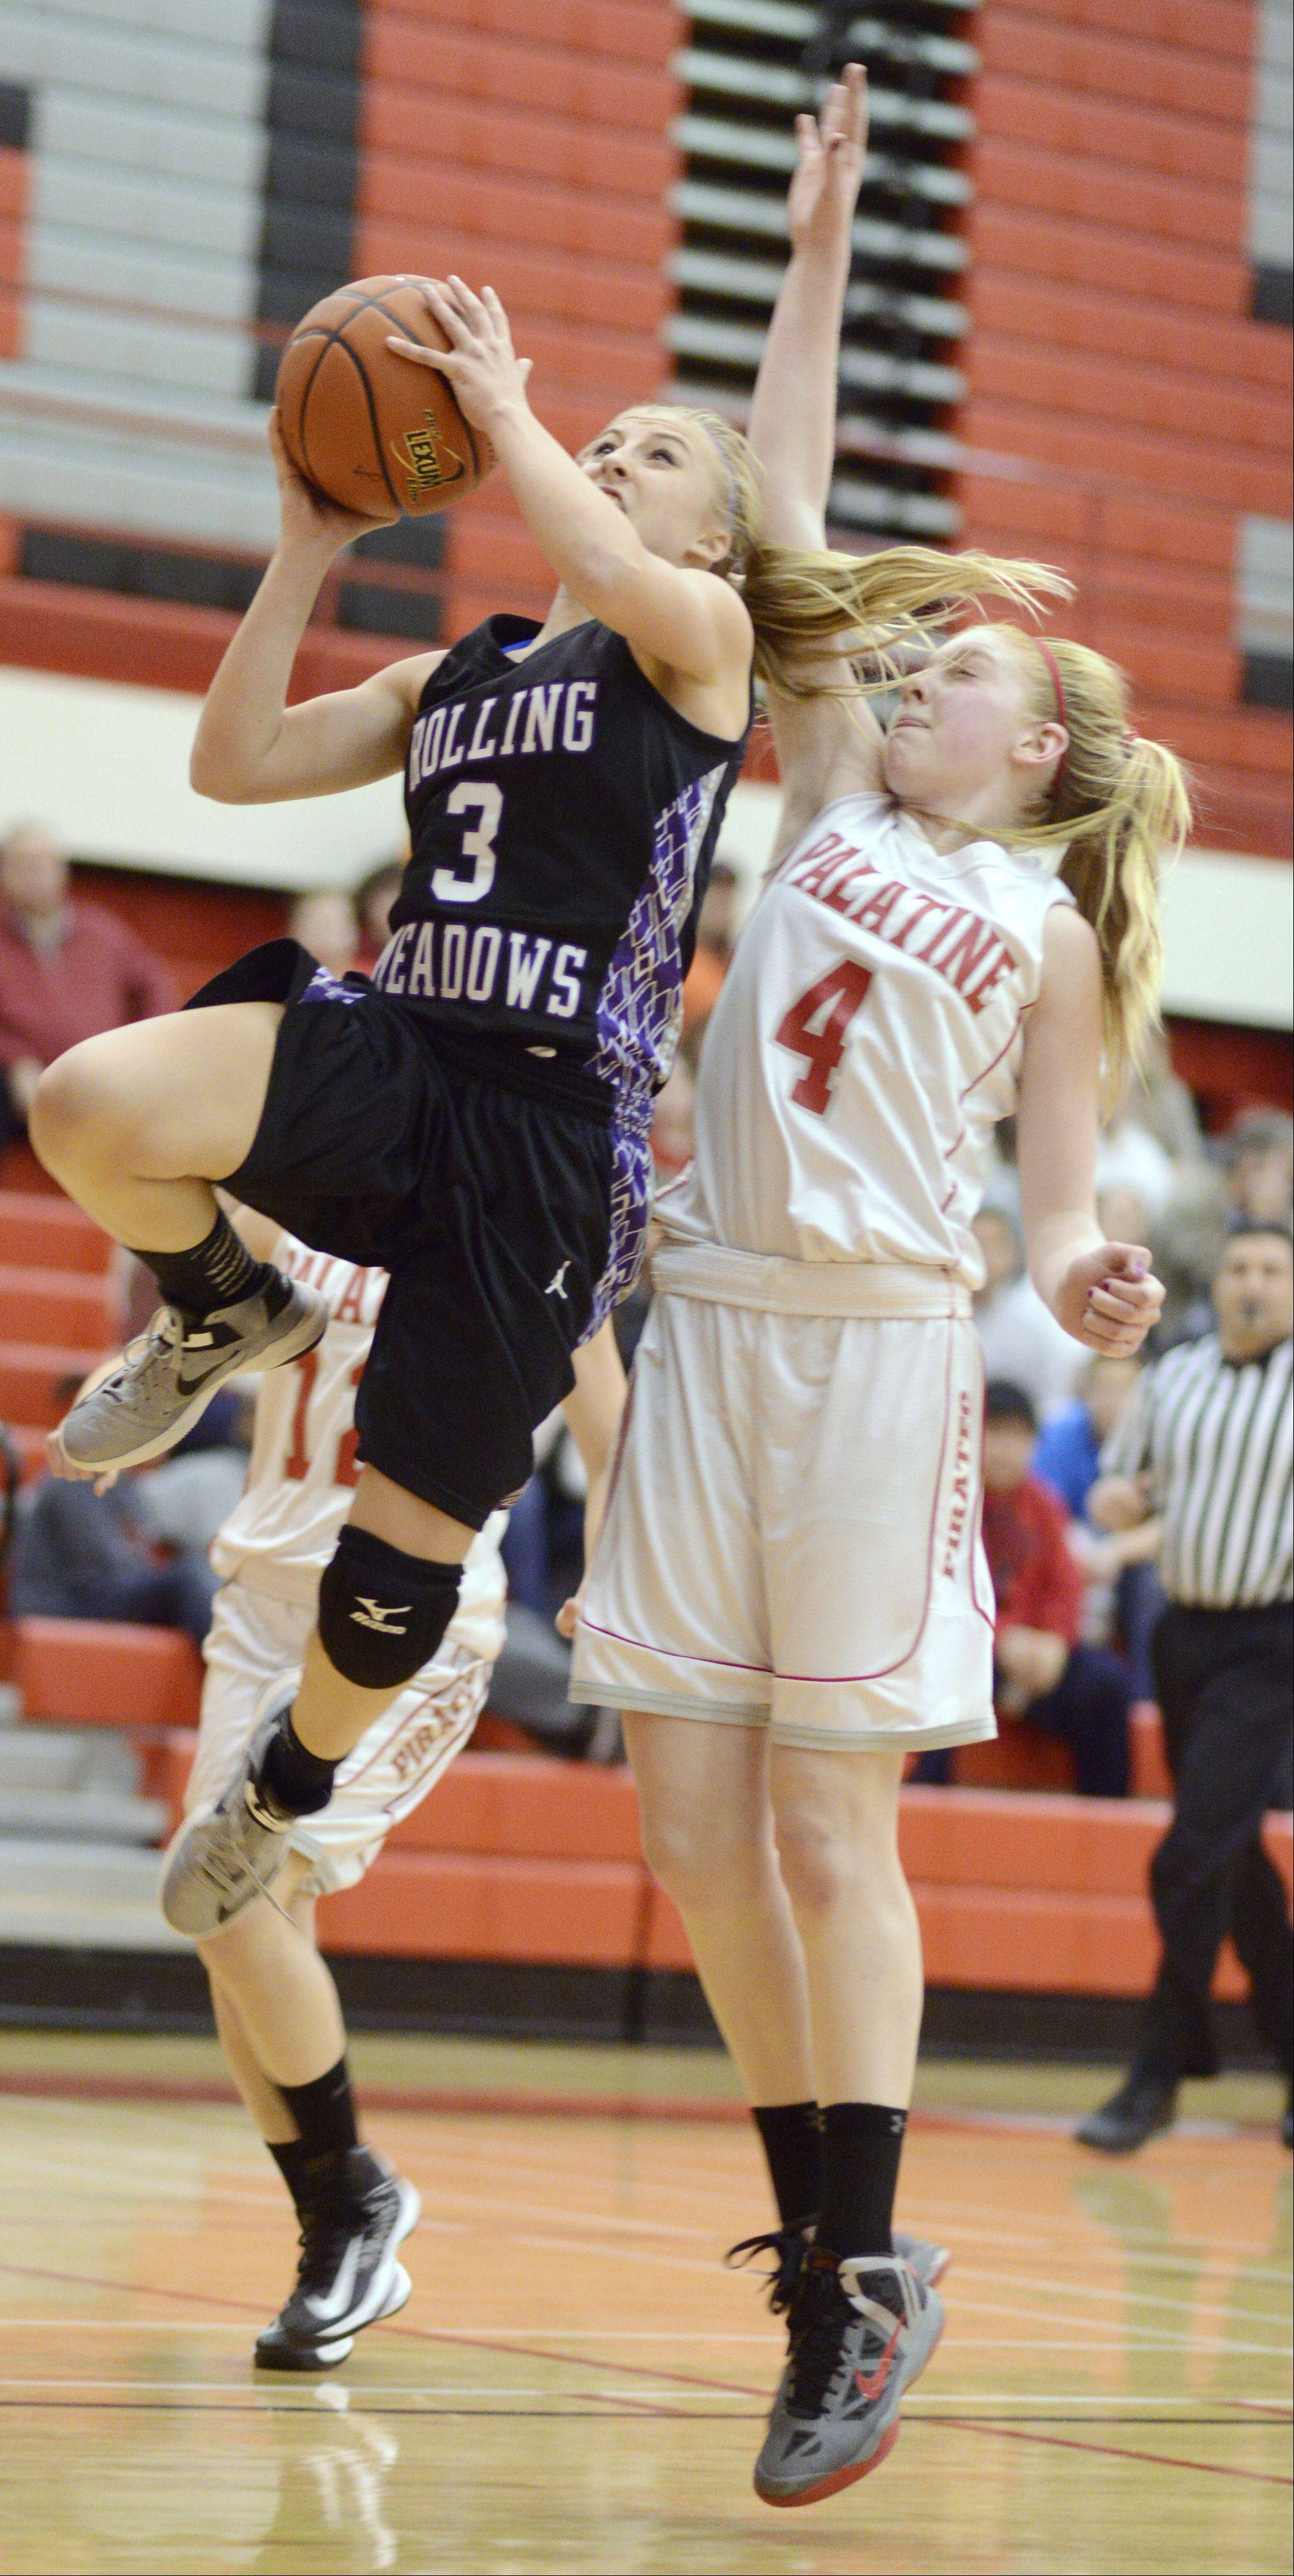 Rolling Meadows' Jackie Kemph stays a step ahead of Palatine's Morgan Radtke on a fast break.